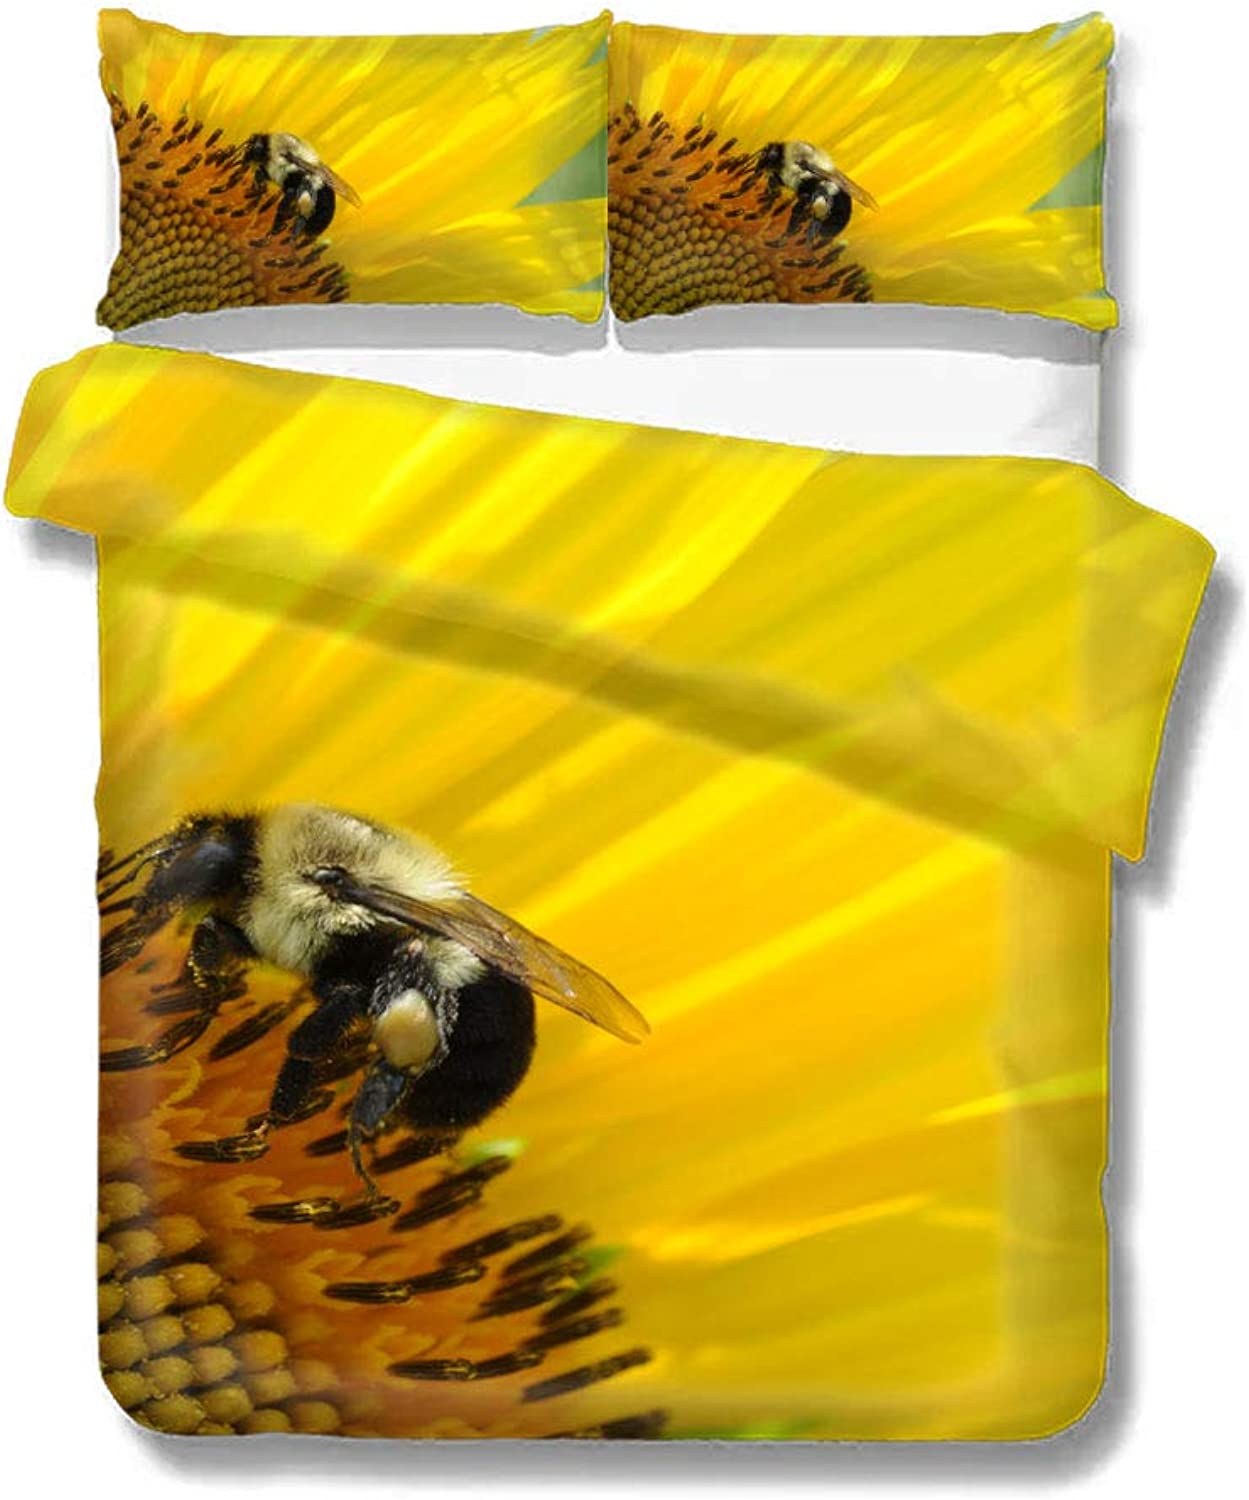 Duvet Cover Sunflower Bee Honey Yellow Flower Home Bedding Duvet Cover Set Soft Comfortable Breathable Twin Size